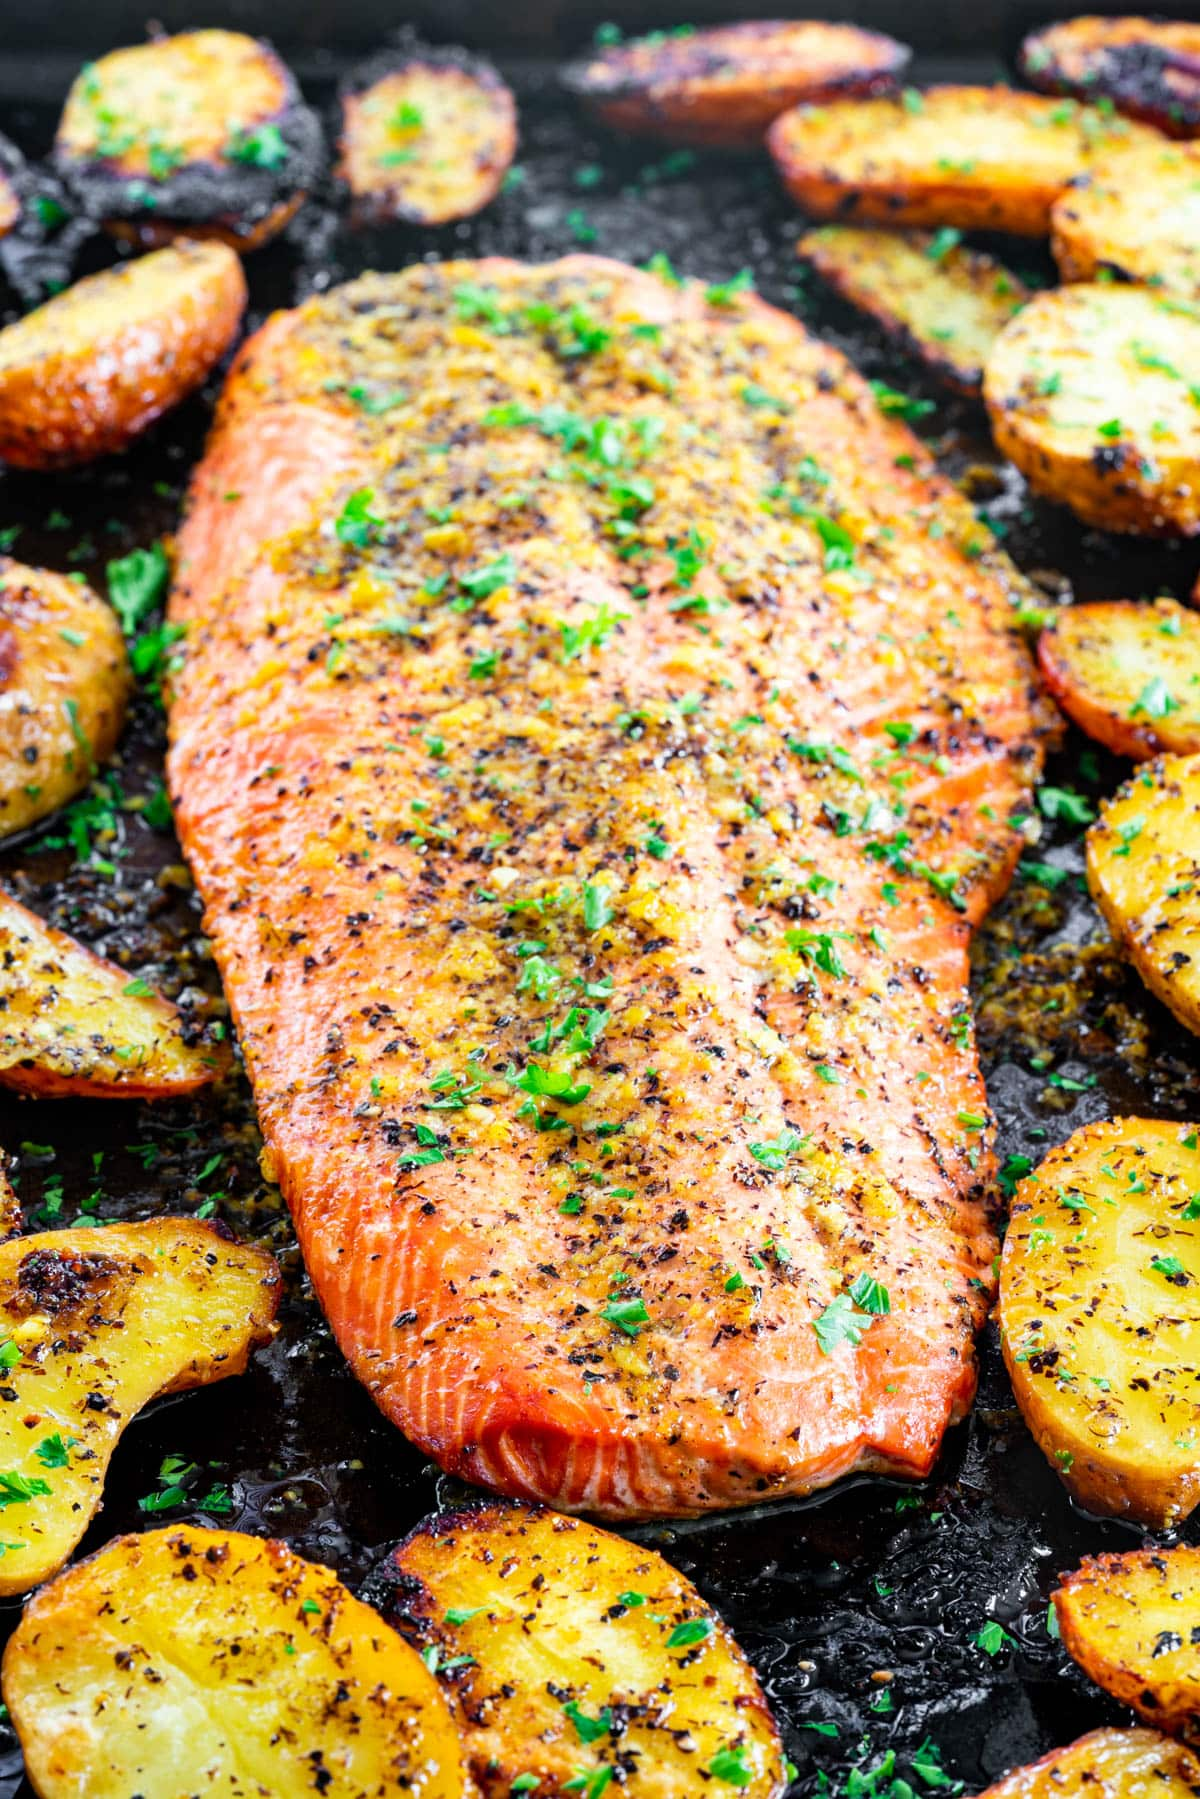 baked lemon pepper salmon on a baking sheet surrounded by roasted potatoes